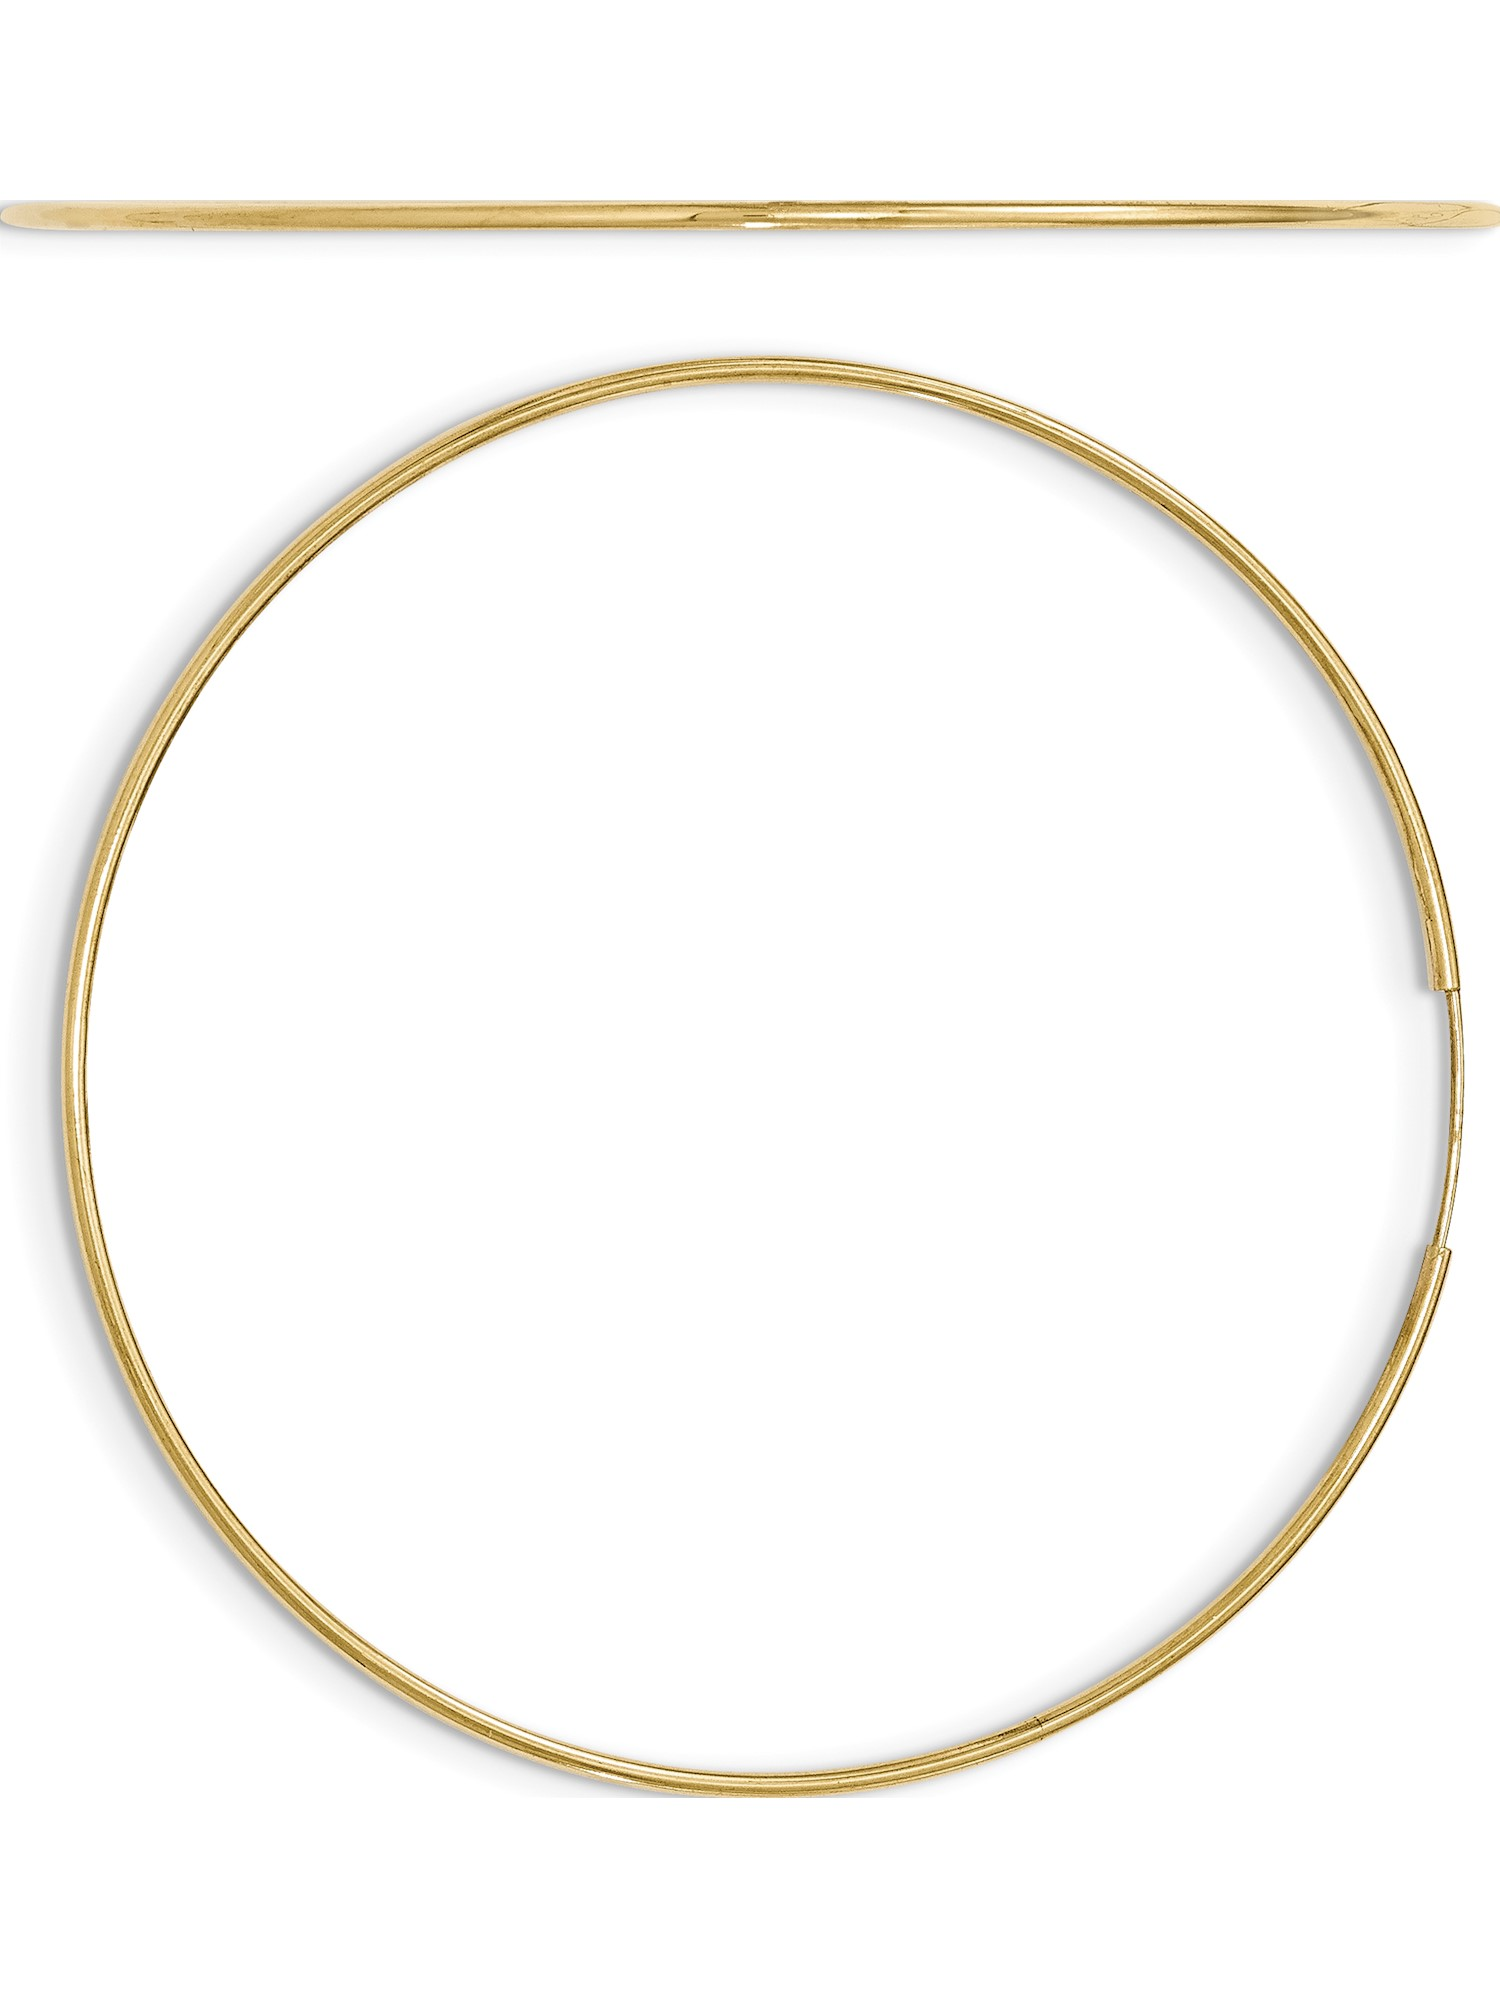 10k or Blanc 1.2 mm Endless Hoop Boucles d/'oreilles